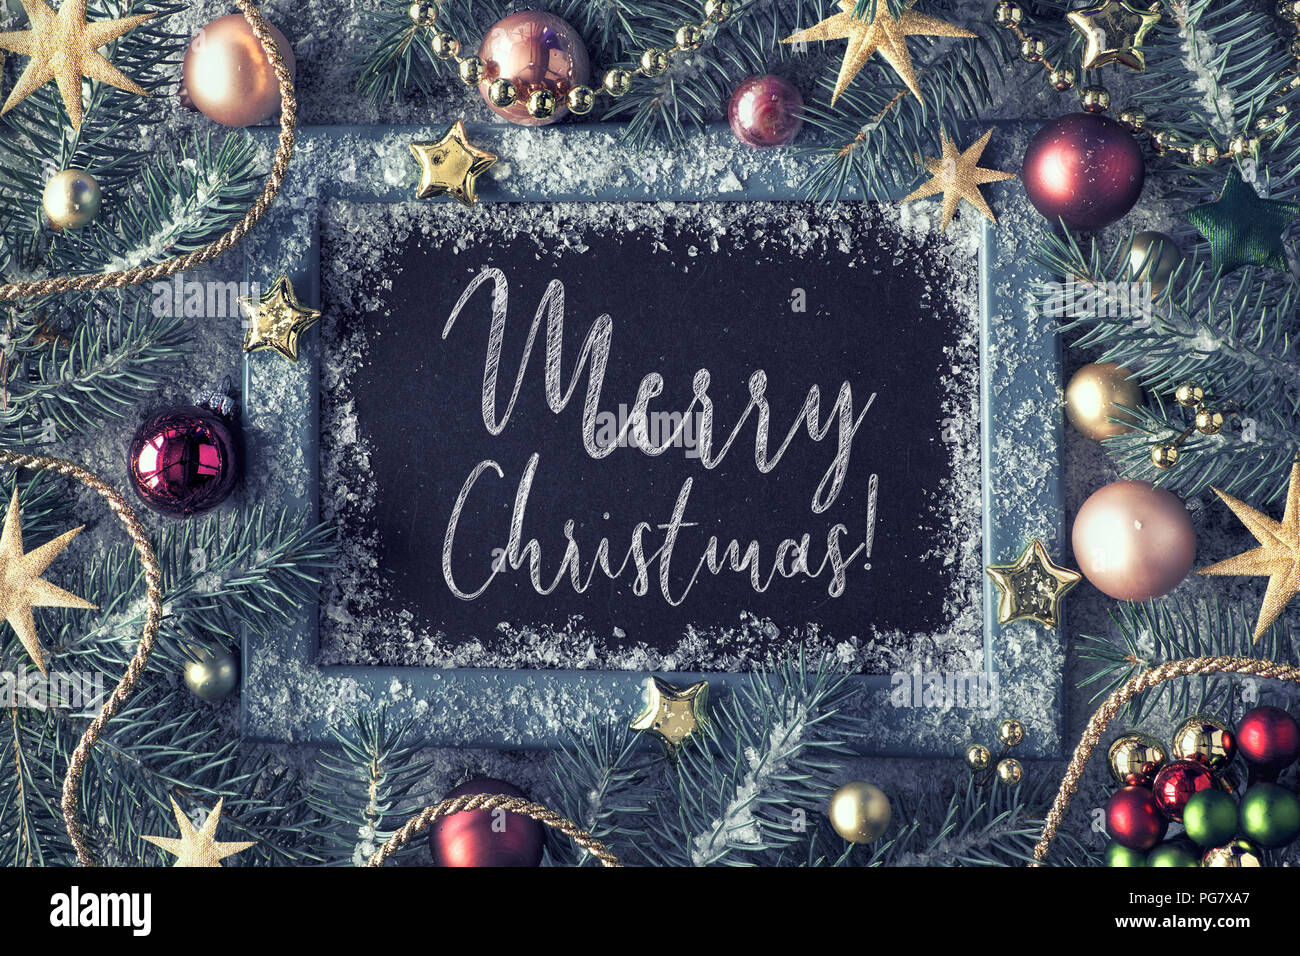 Green Pink And Golden Christmas Background With Blank Black Board Decorated Fir Twigs Around Chalk Board On Rustic Wood With Snow Top View With Tex Stock Photo Alamy